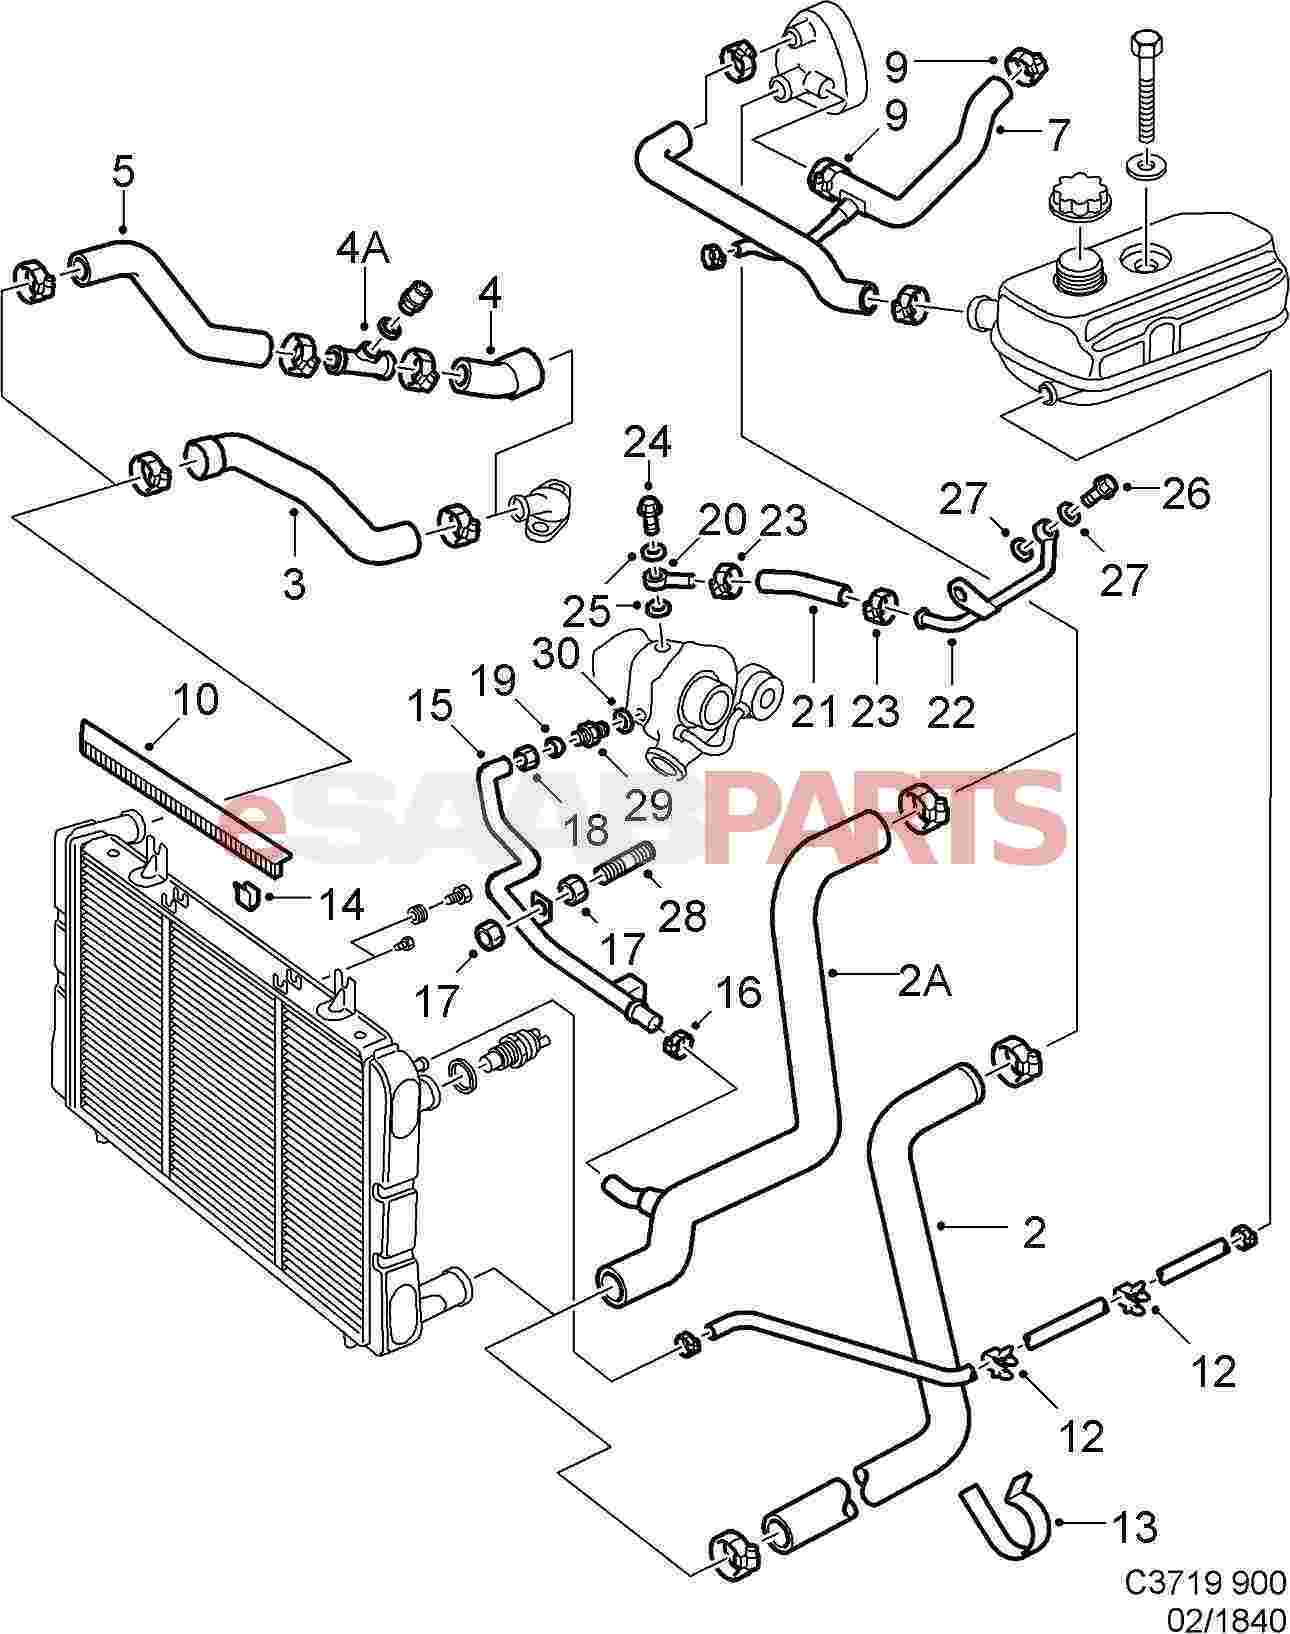 Esaabparts 1998 saab 900 engine diagram esaabparts saab 900 \u003e engine parts \